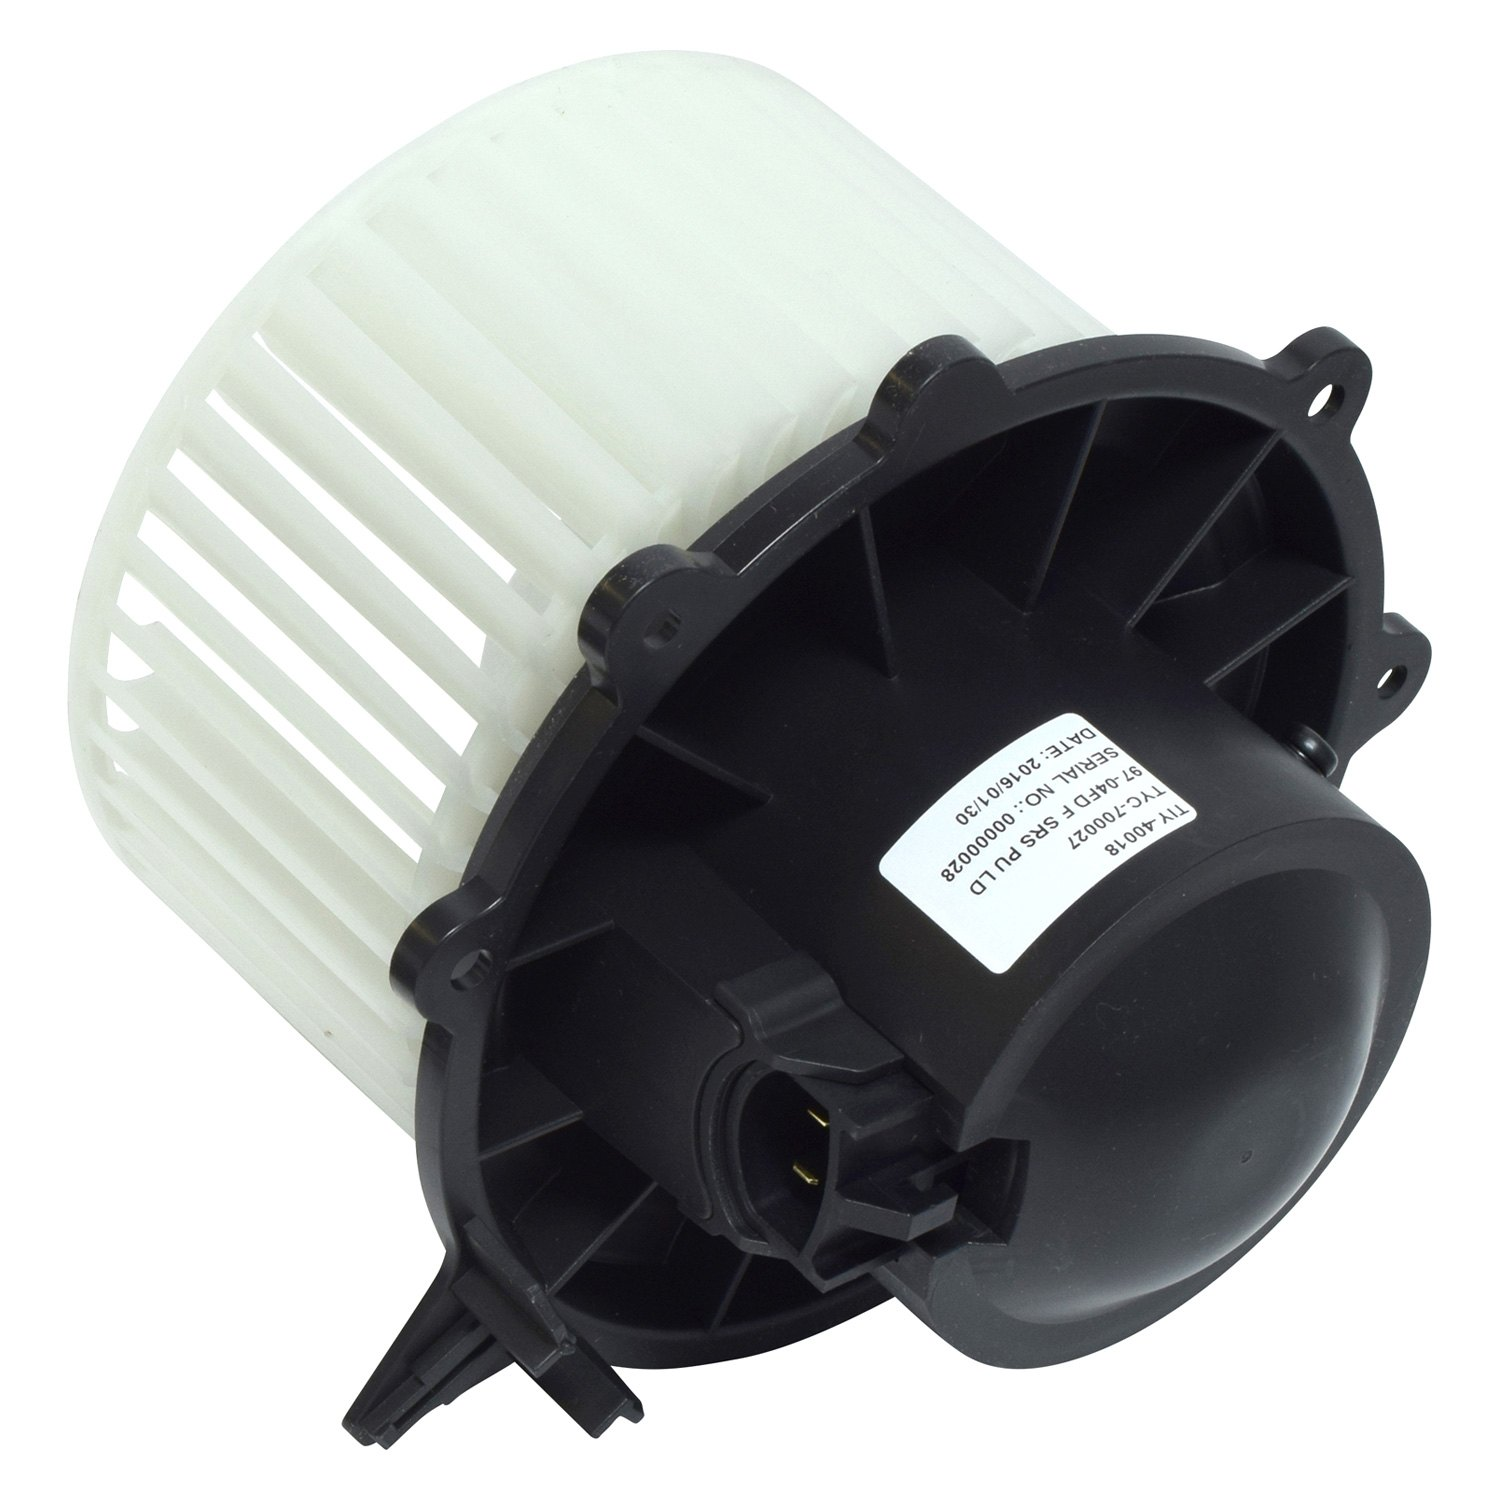 Uac ford f 150 1999 hvac blower motor for Air conditioning blower motor